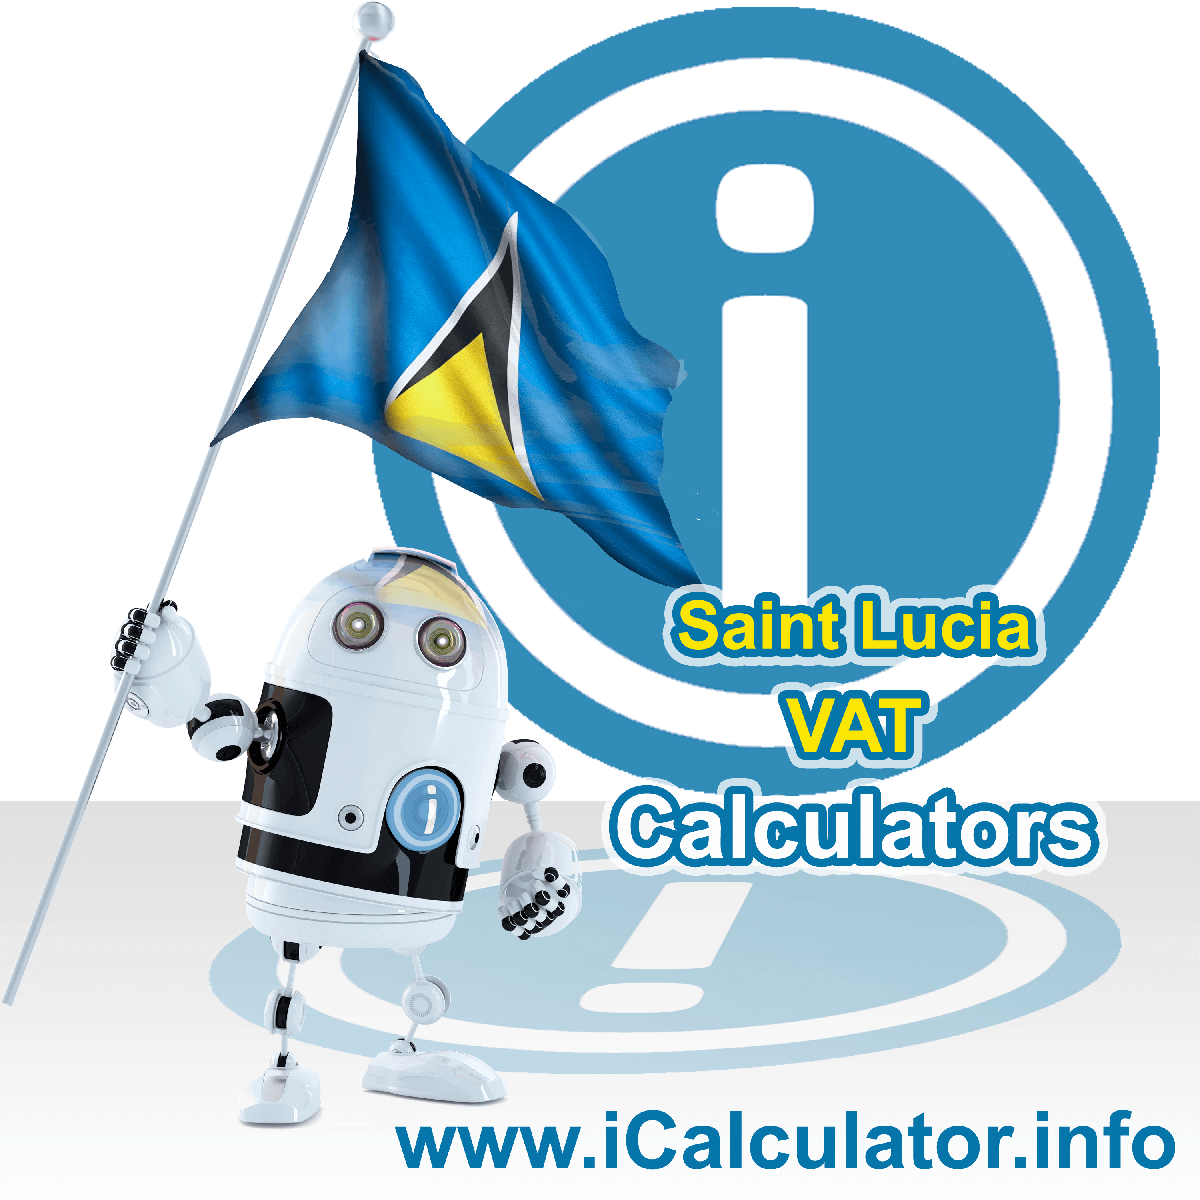 Saint Lucia VAT Calculator. This image shows the Saint Lucia flag and information relating to the VAT formula used for calculating Value Added Tax in Saint Lucia using the Saint Lucia VAT Calculator in 2021